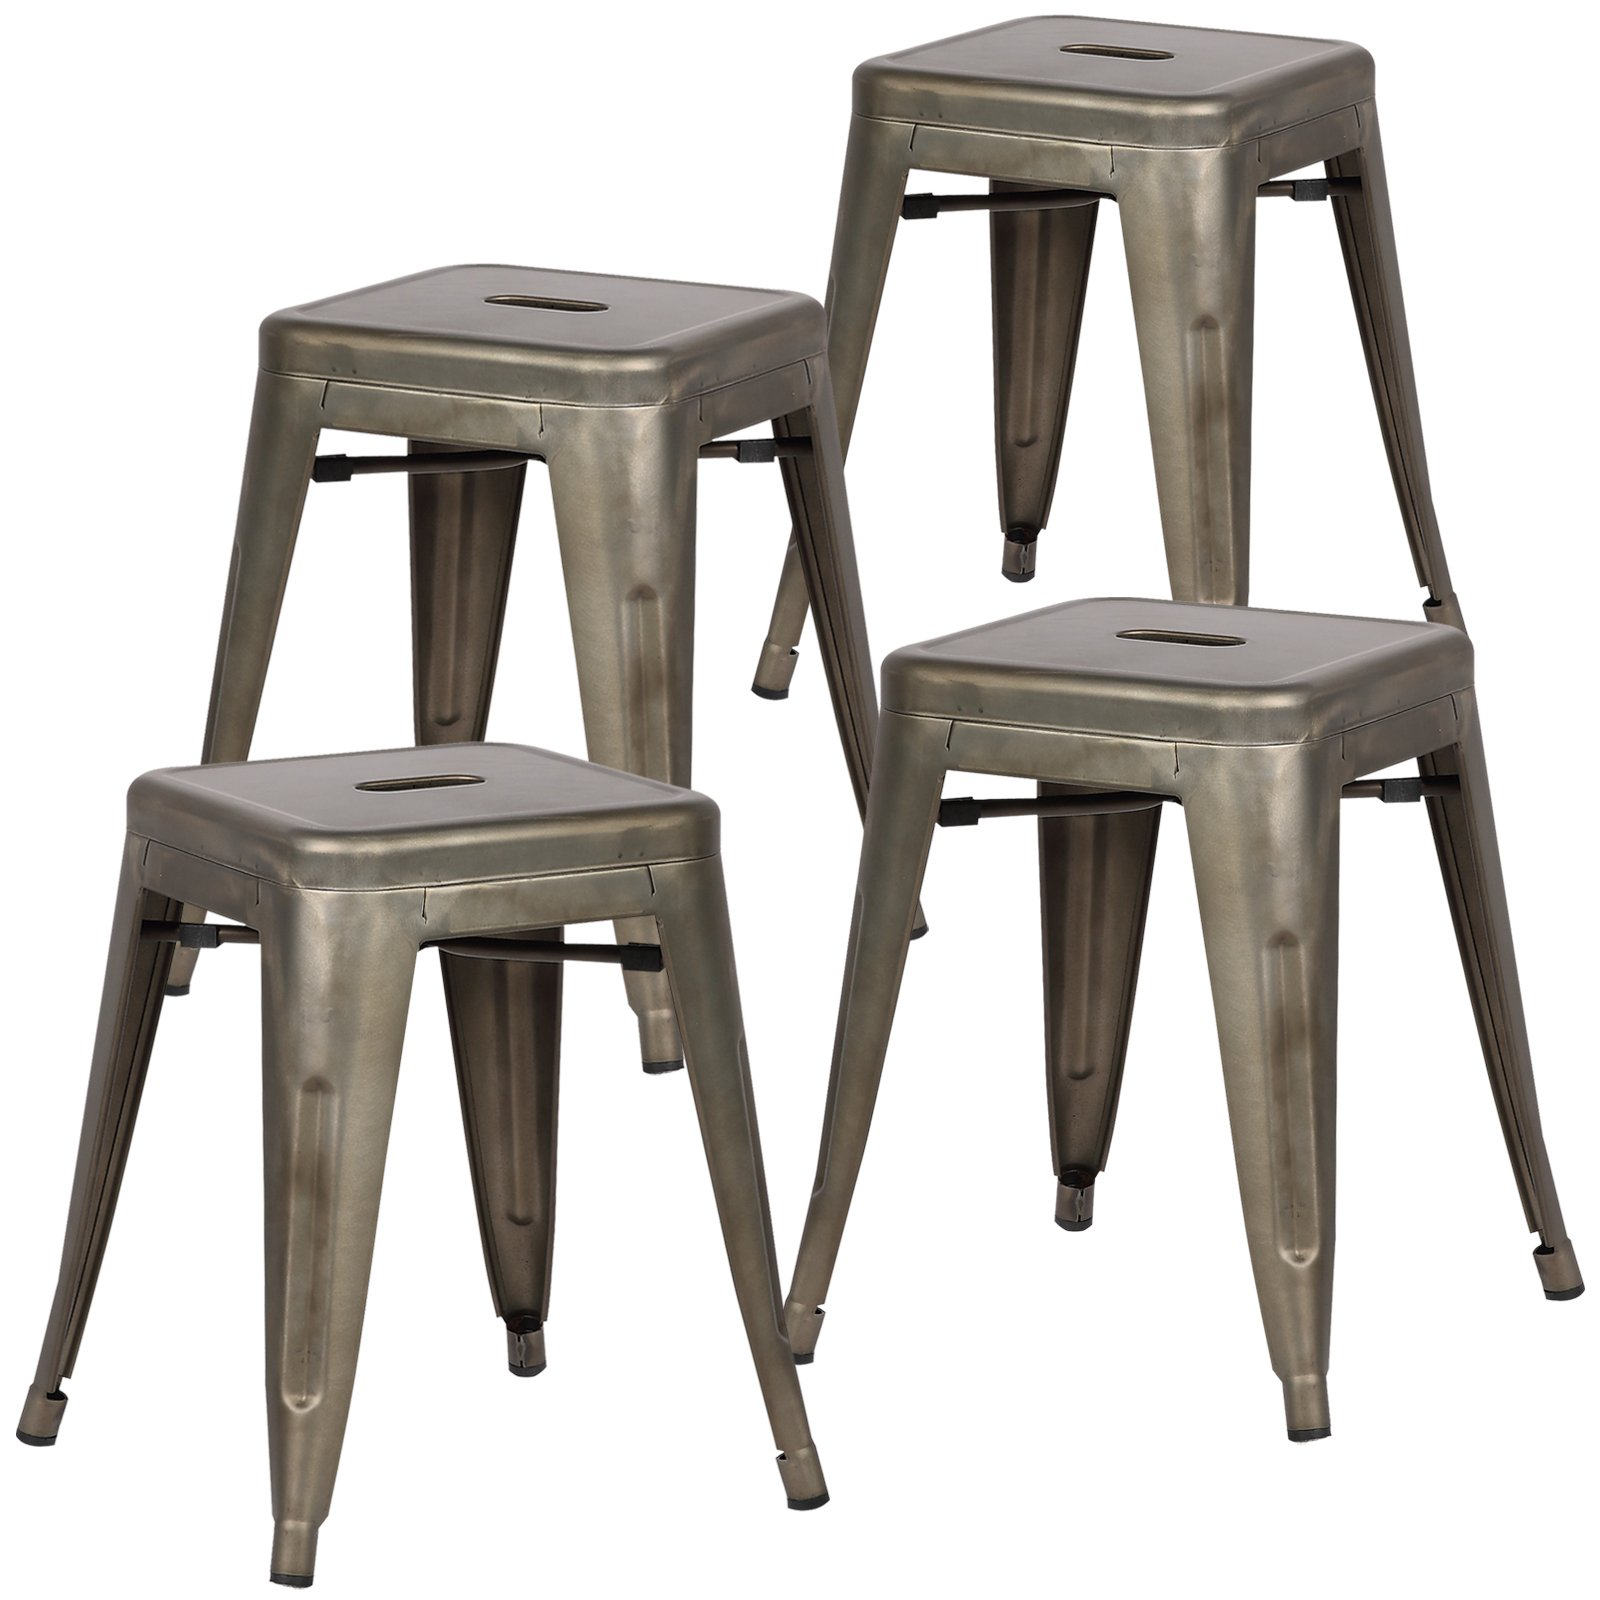 Poly and Bark Trattoria 18'' Stool in Bronze (Set of 4)